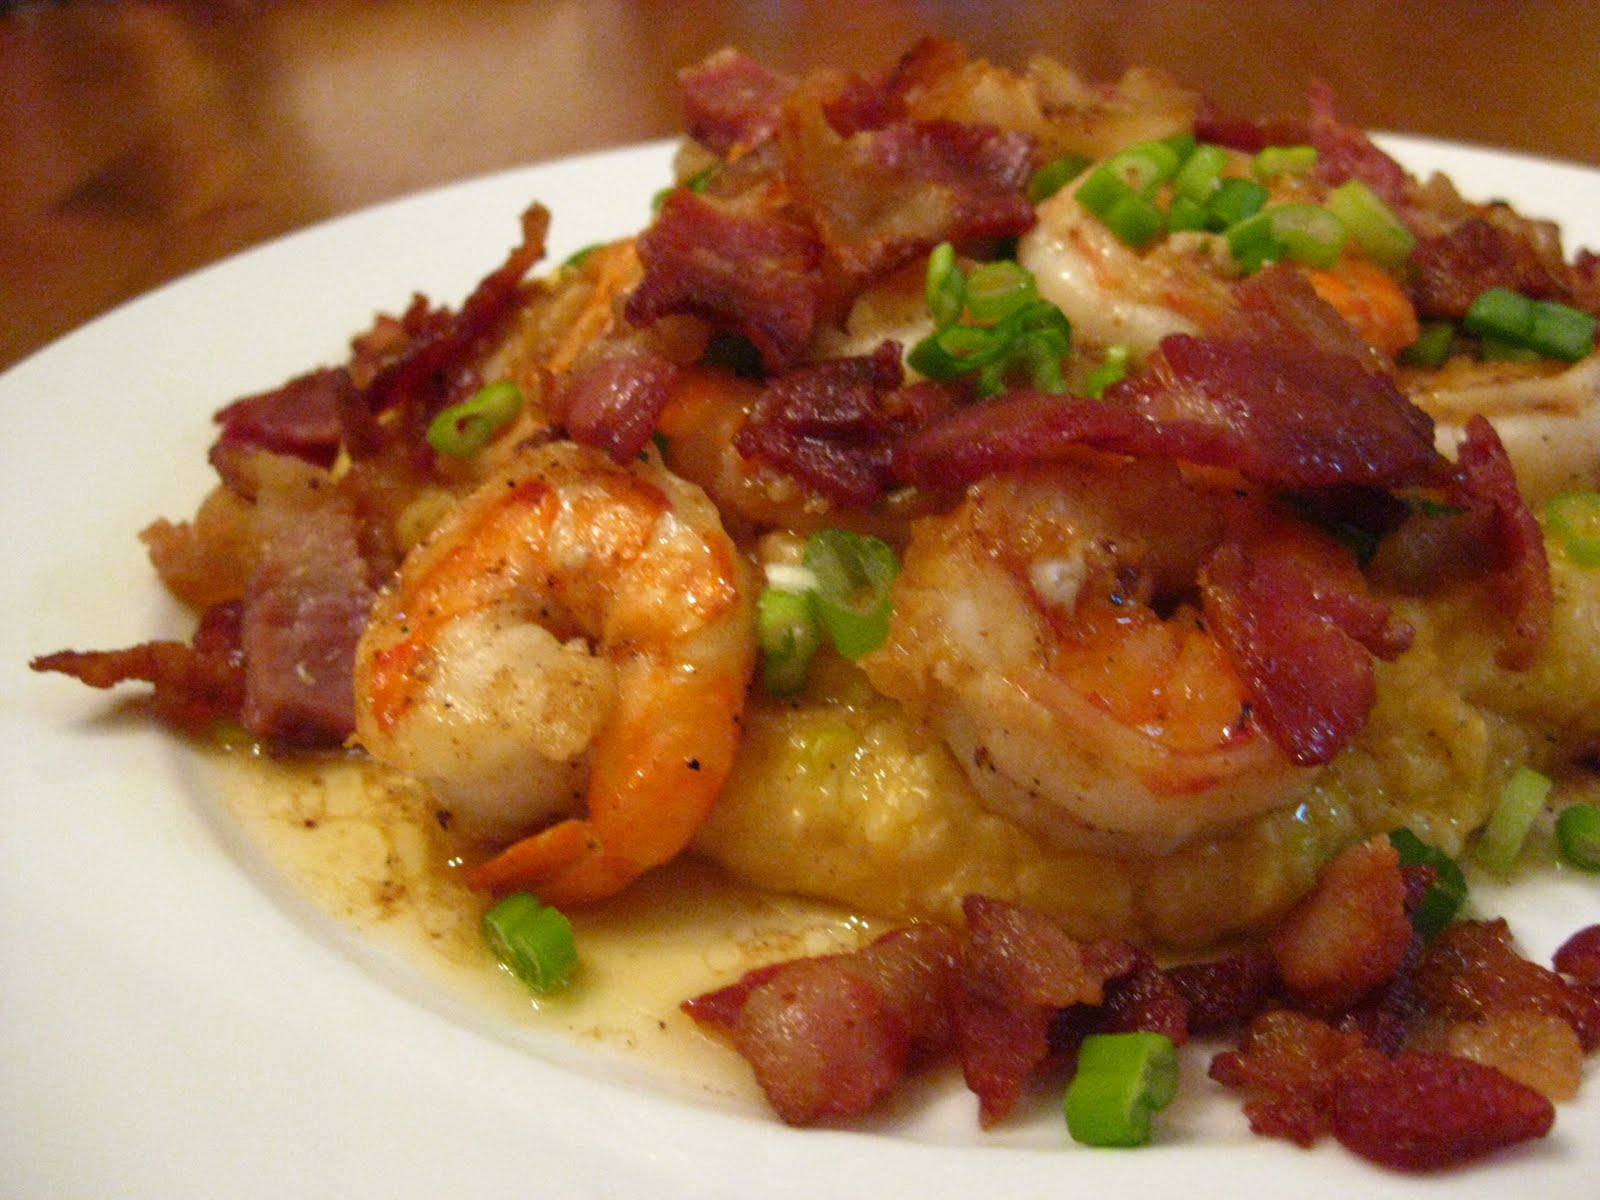 Shrimp and Grits Recipe by Lil B - Key Ingredient